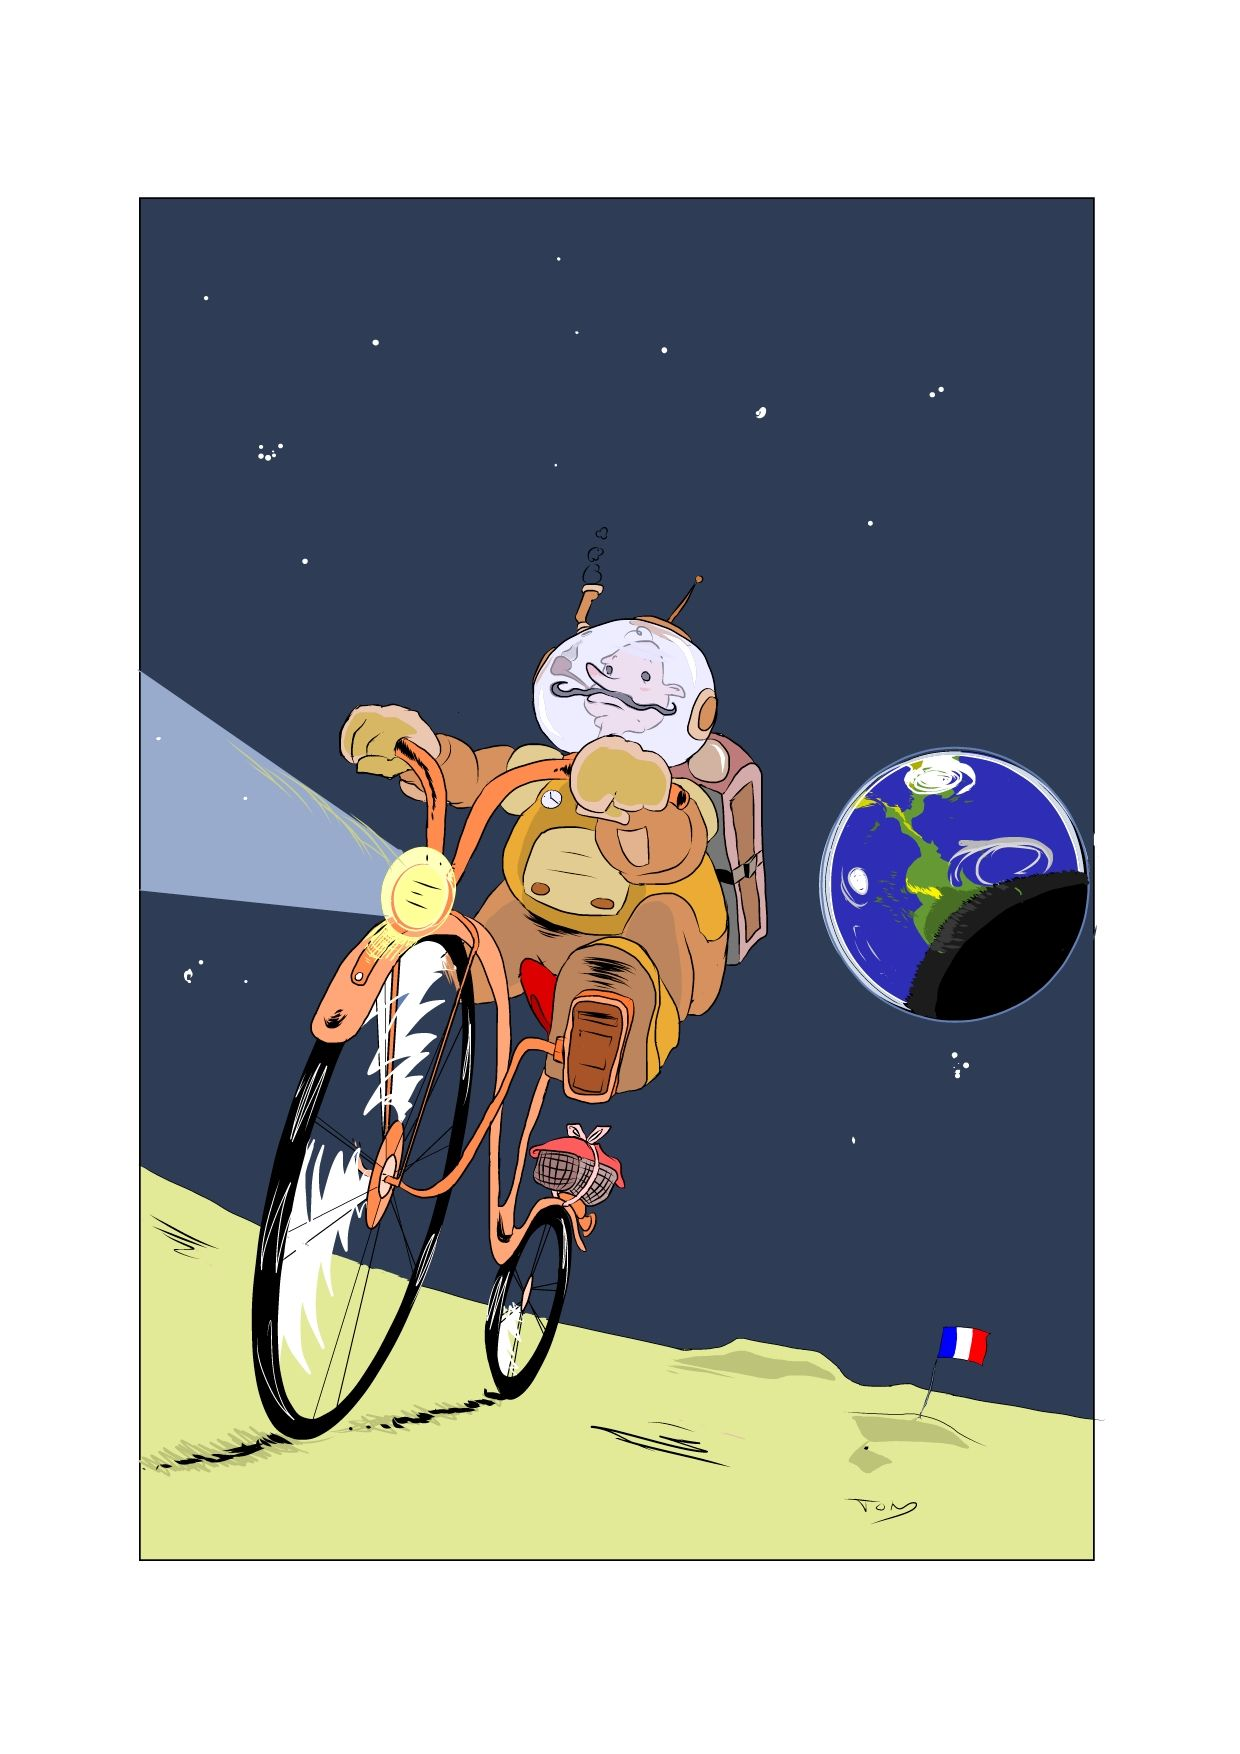 'Cyclonaute' Perfect for any bike and space mad little one. Shows imagination makes anything possible.  All prints start from £14.95, with frame options available.  http://artdoodles.co.uk/cyclonaute-13799-p.asp